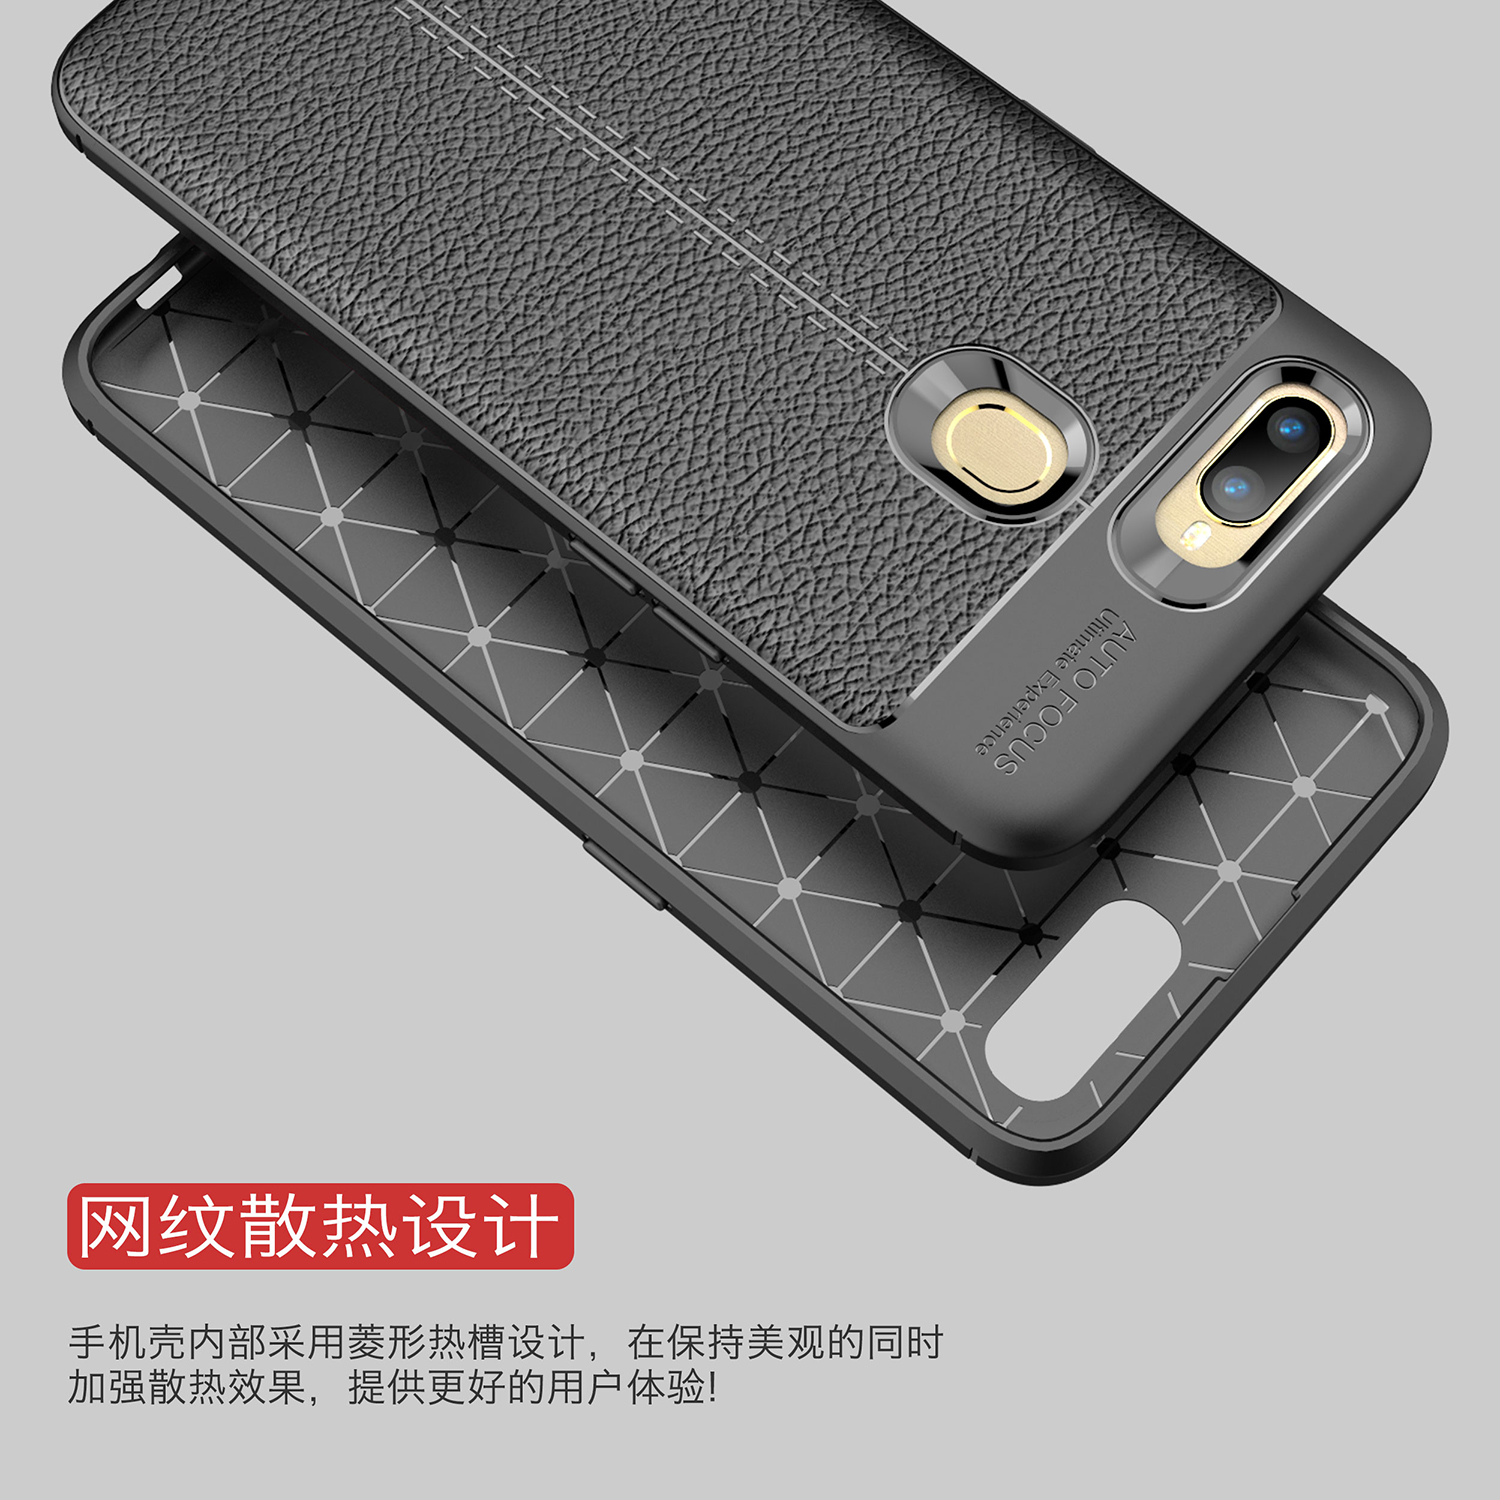 For OPPO A7 Case Soft Silicone PU Leather Shell Shockproof Anti knock Phone Case For OPPO A7 Cover For OPPO A7 Funda 6 2 quot BSNOVT in Fitted Cases from Cellphones amp Telecommunications